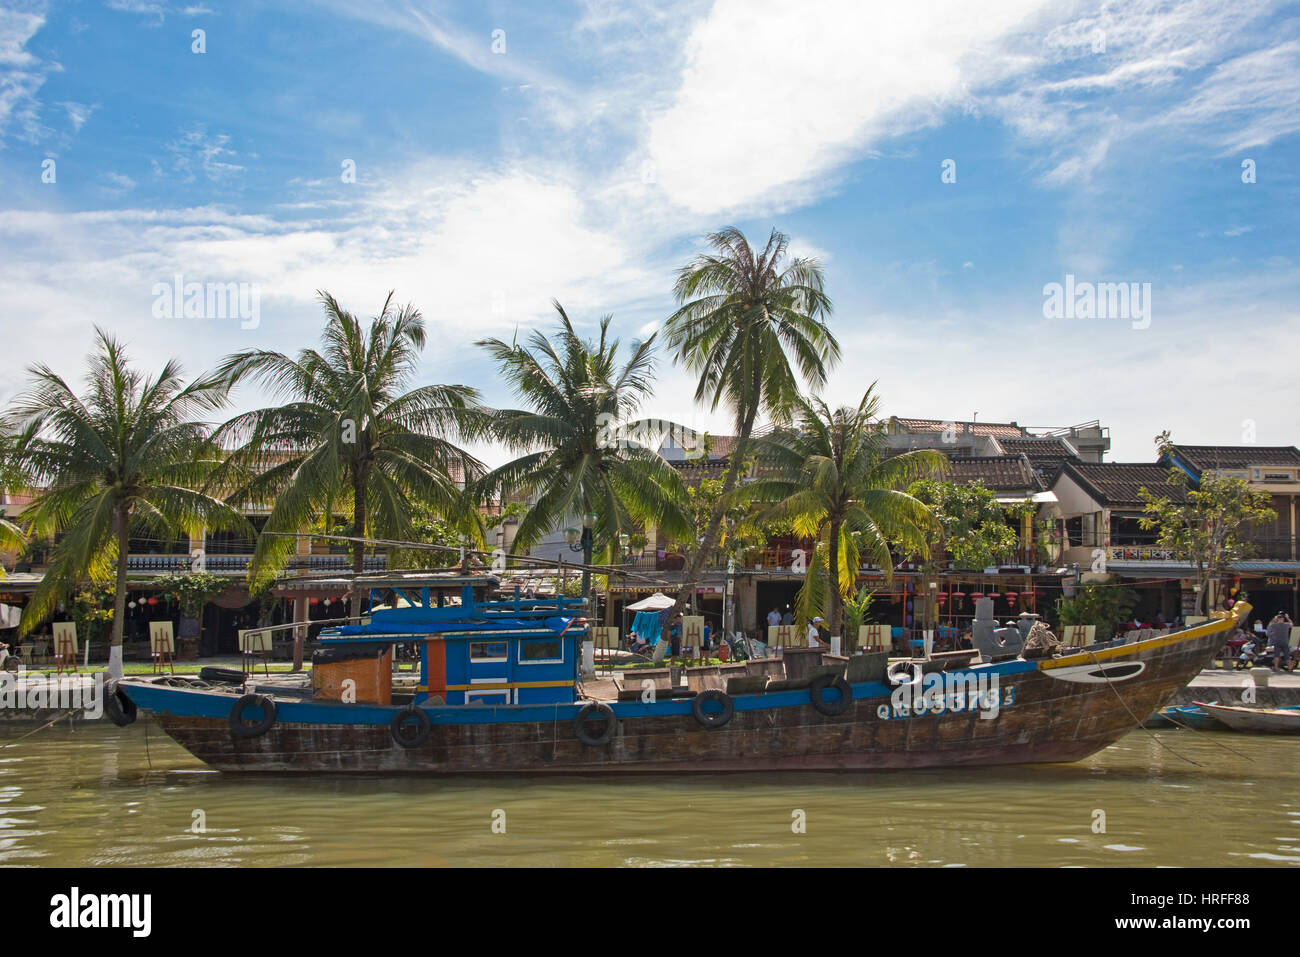 A view inl Hoi An old town with wooden tourist and fishing boats on the Thu Bon river next to the Cau An Hoi bridge - Stock Image